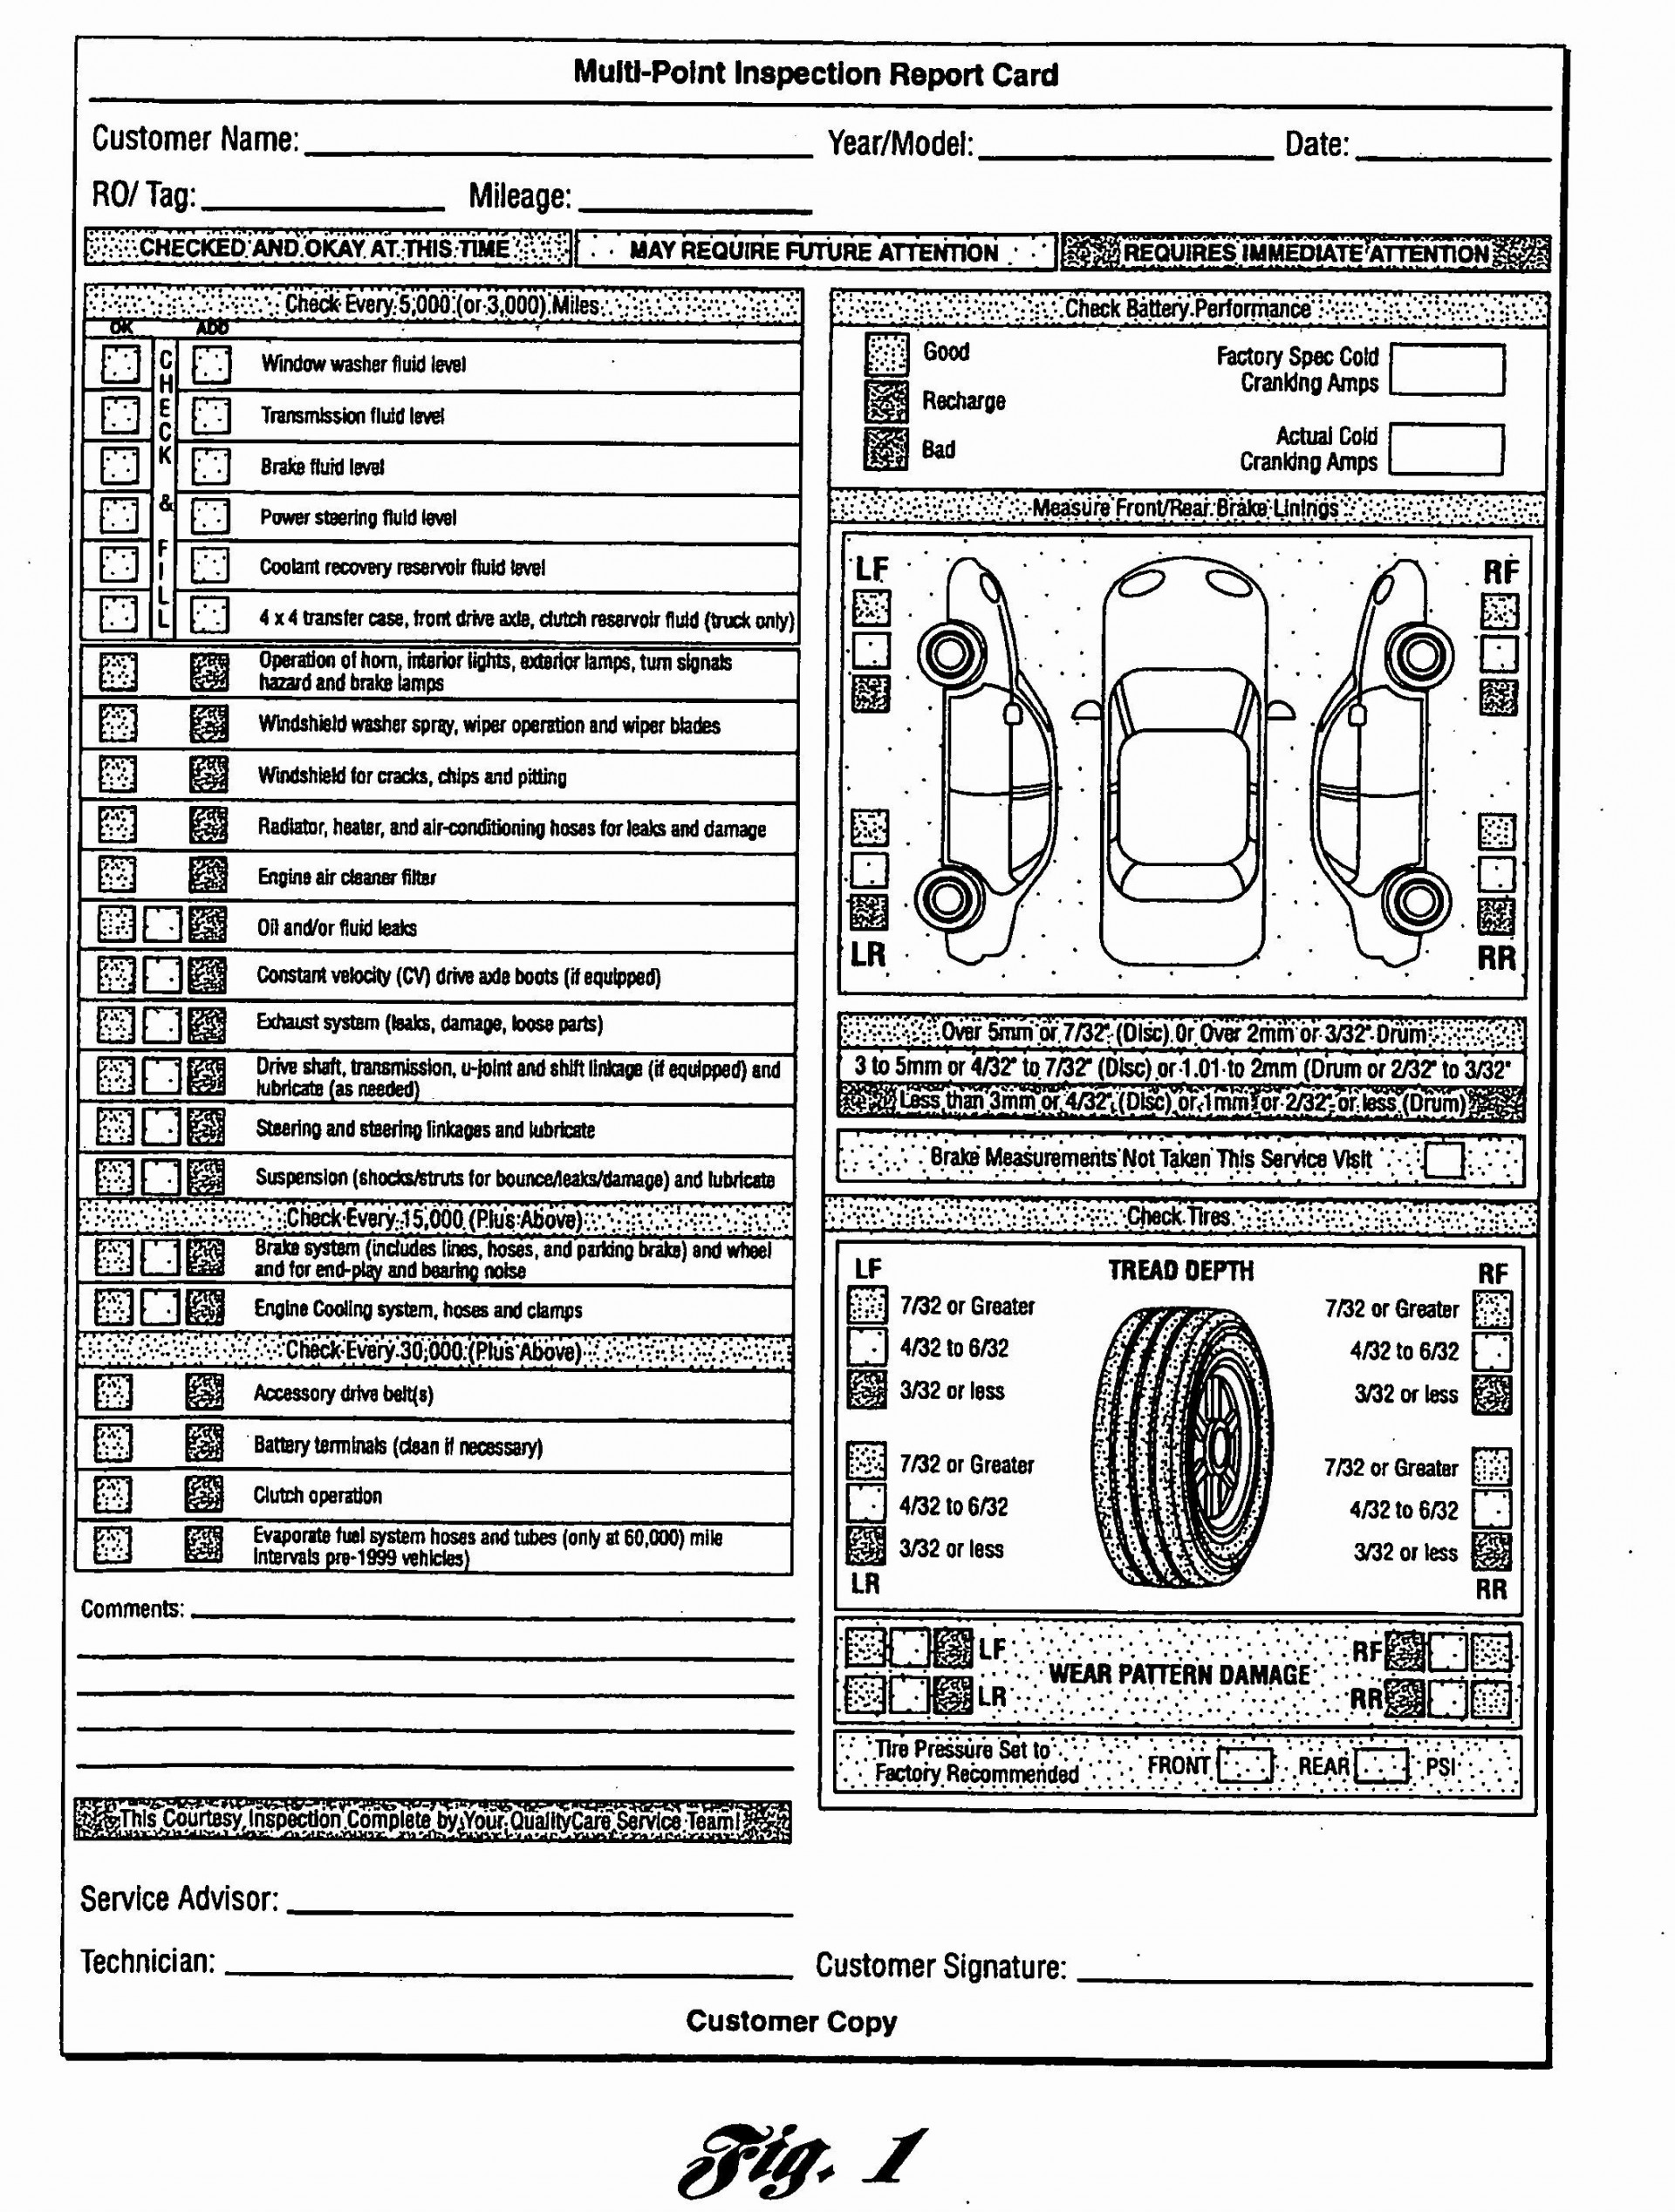 004 Unusual Truck Inspection Form Template High Definition  Commercial Vehicle Maintenance Free1920